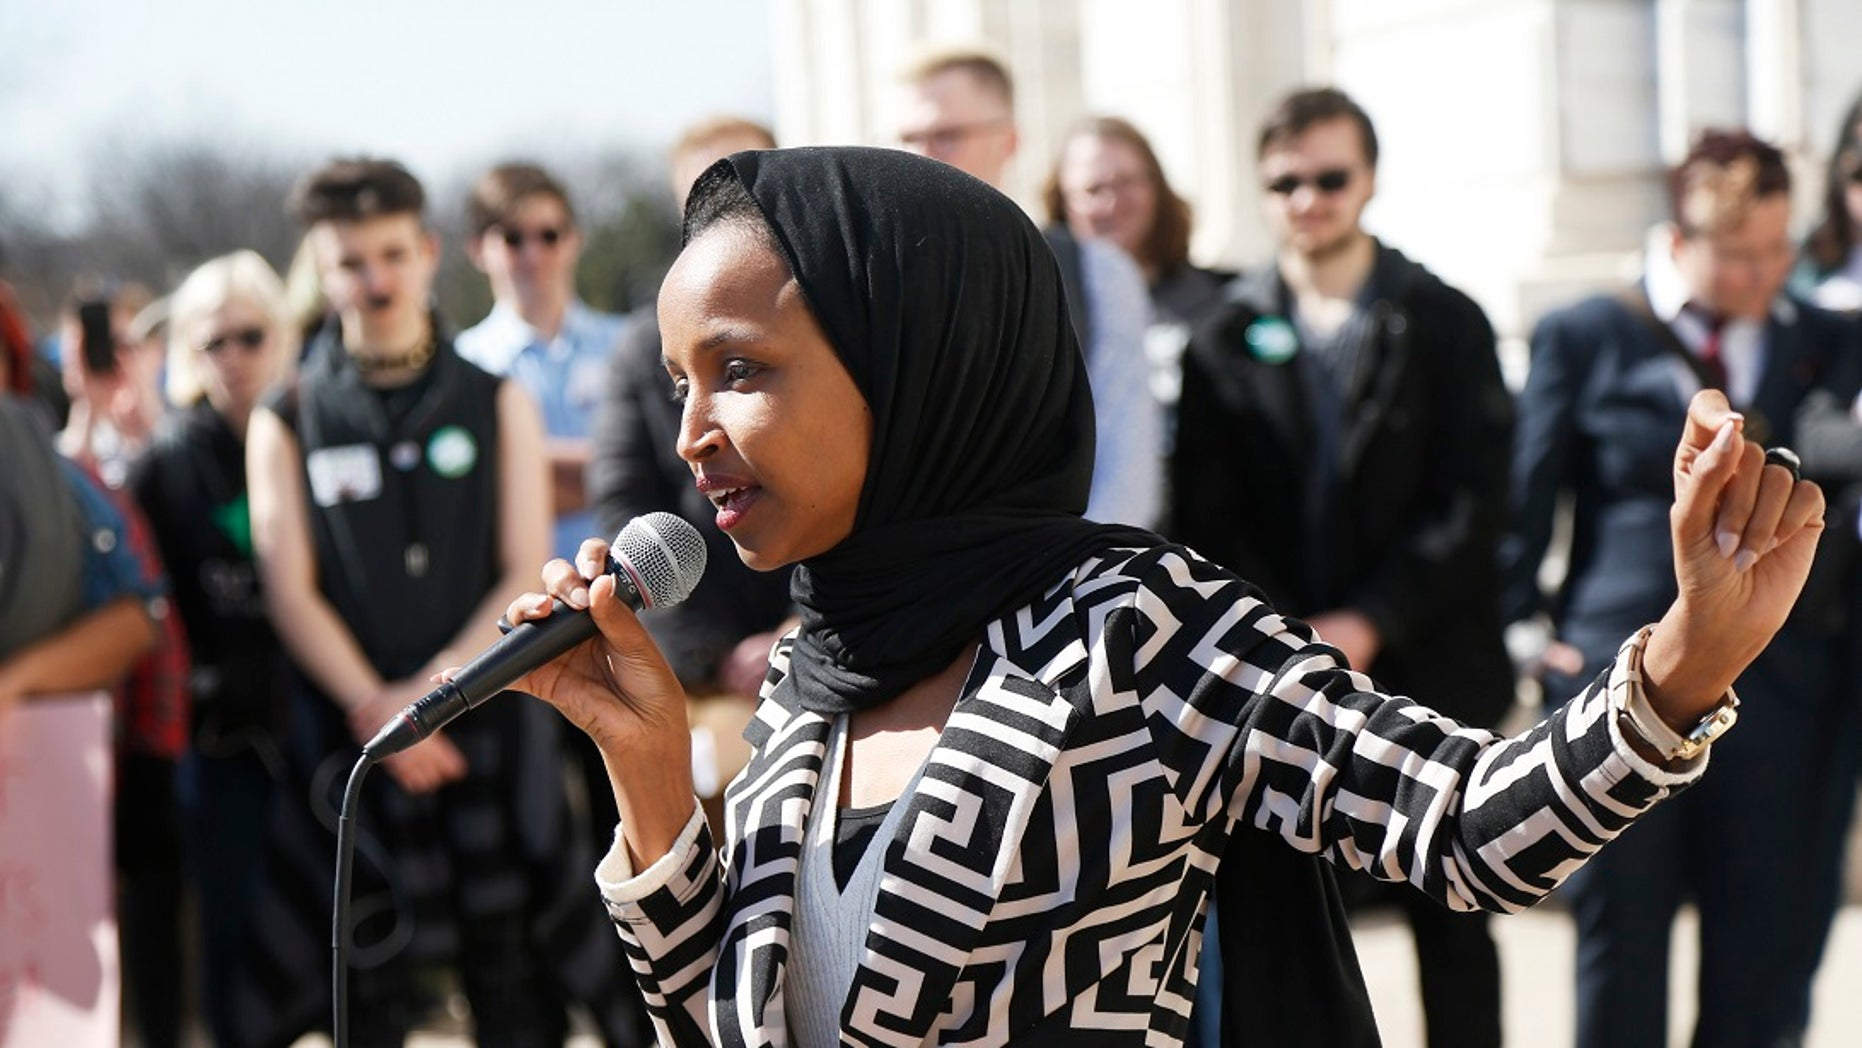 Chuck Schumer pleads with AIPAC to ignore Ilhan Omar Israel comments